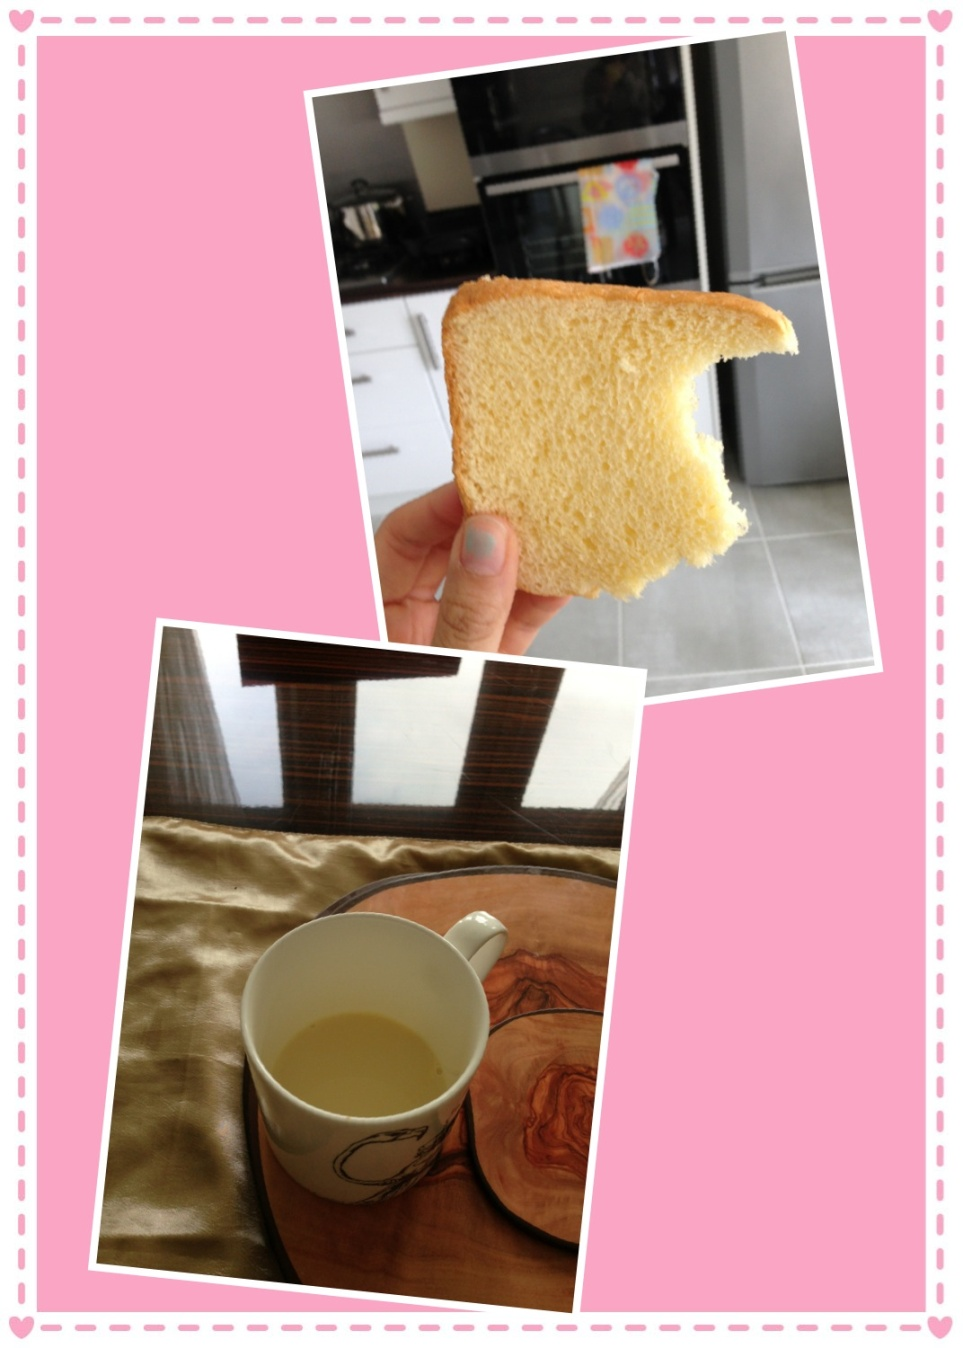 Breakfast: Soya Milk + Bread